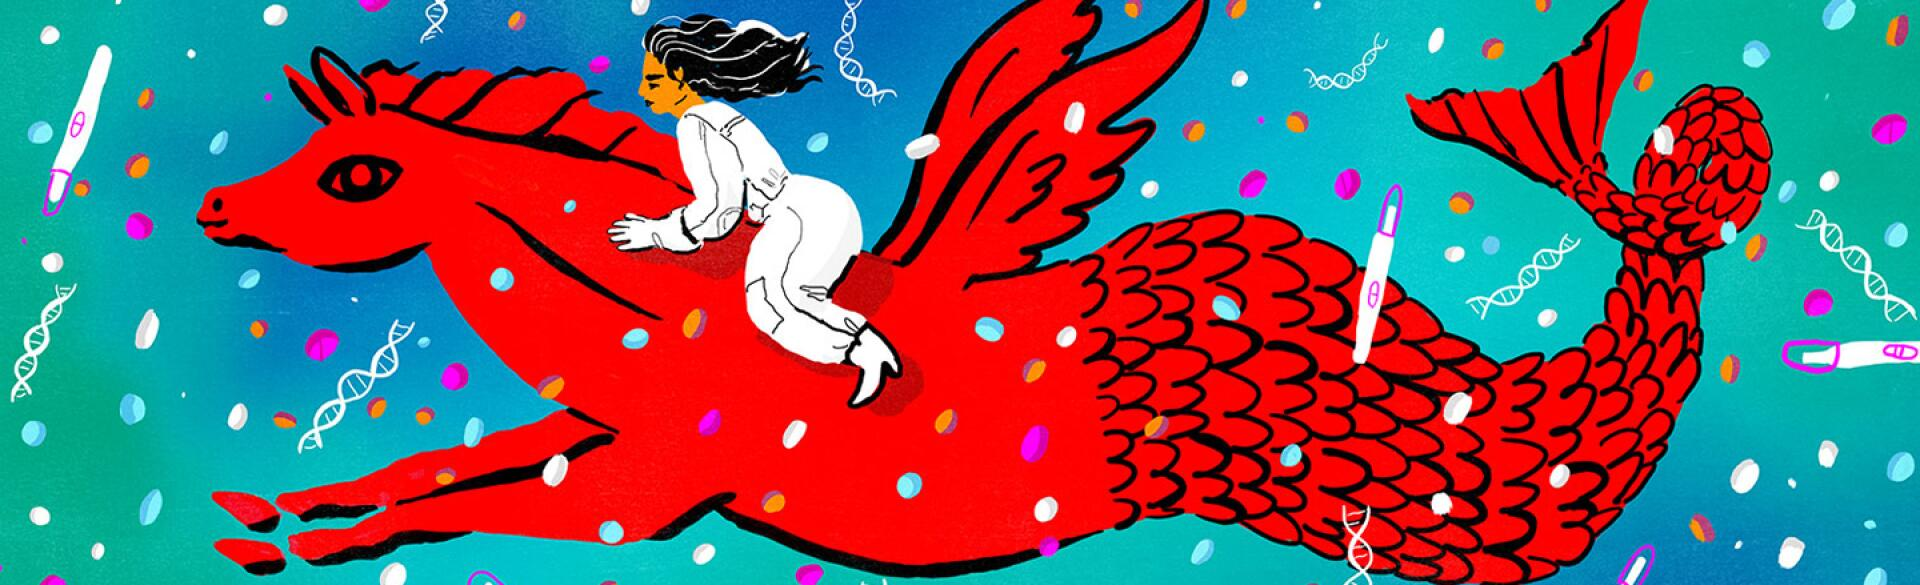 illustration of a woman riding on a mythical creature surrounded by pregnancy tests and dna